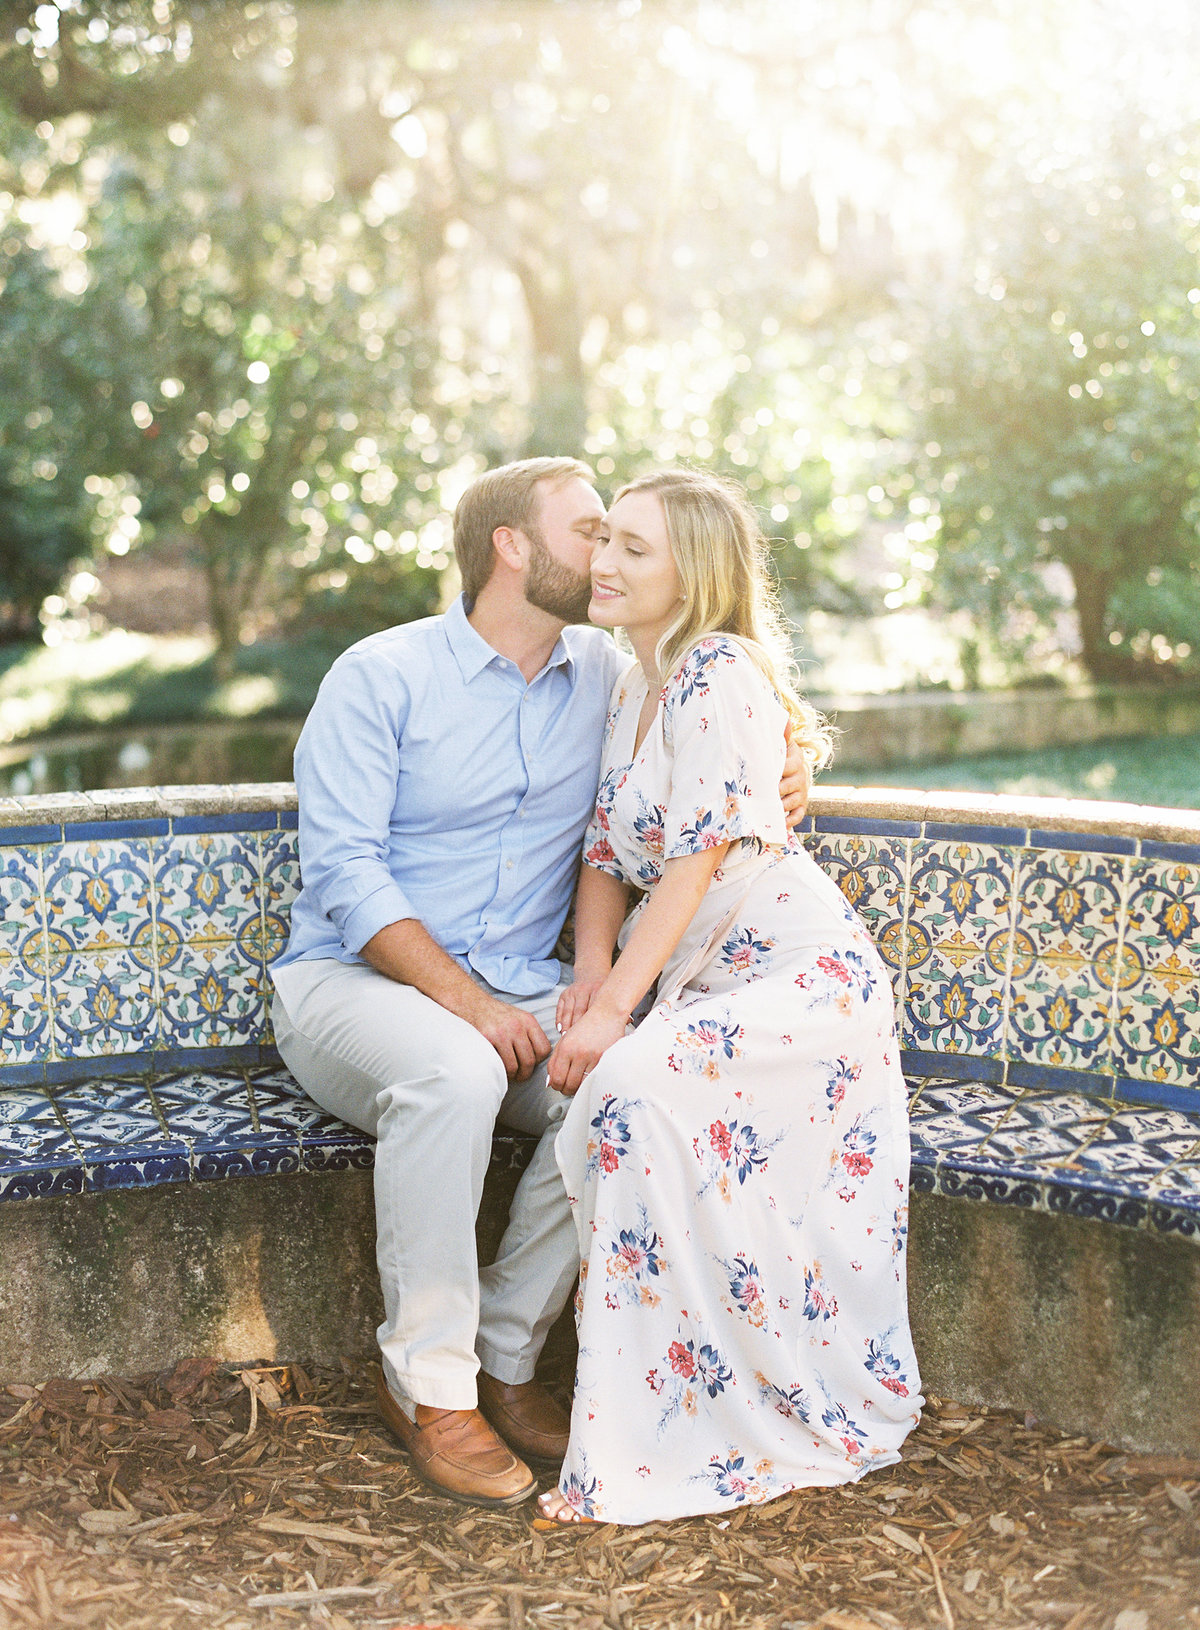 Bok_Tower_Garden_Film_Fine_Art_Engagement_Session-23